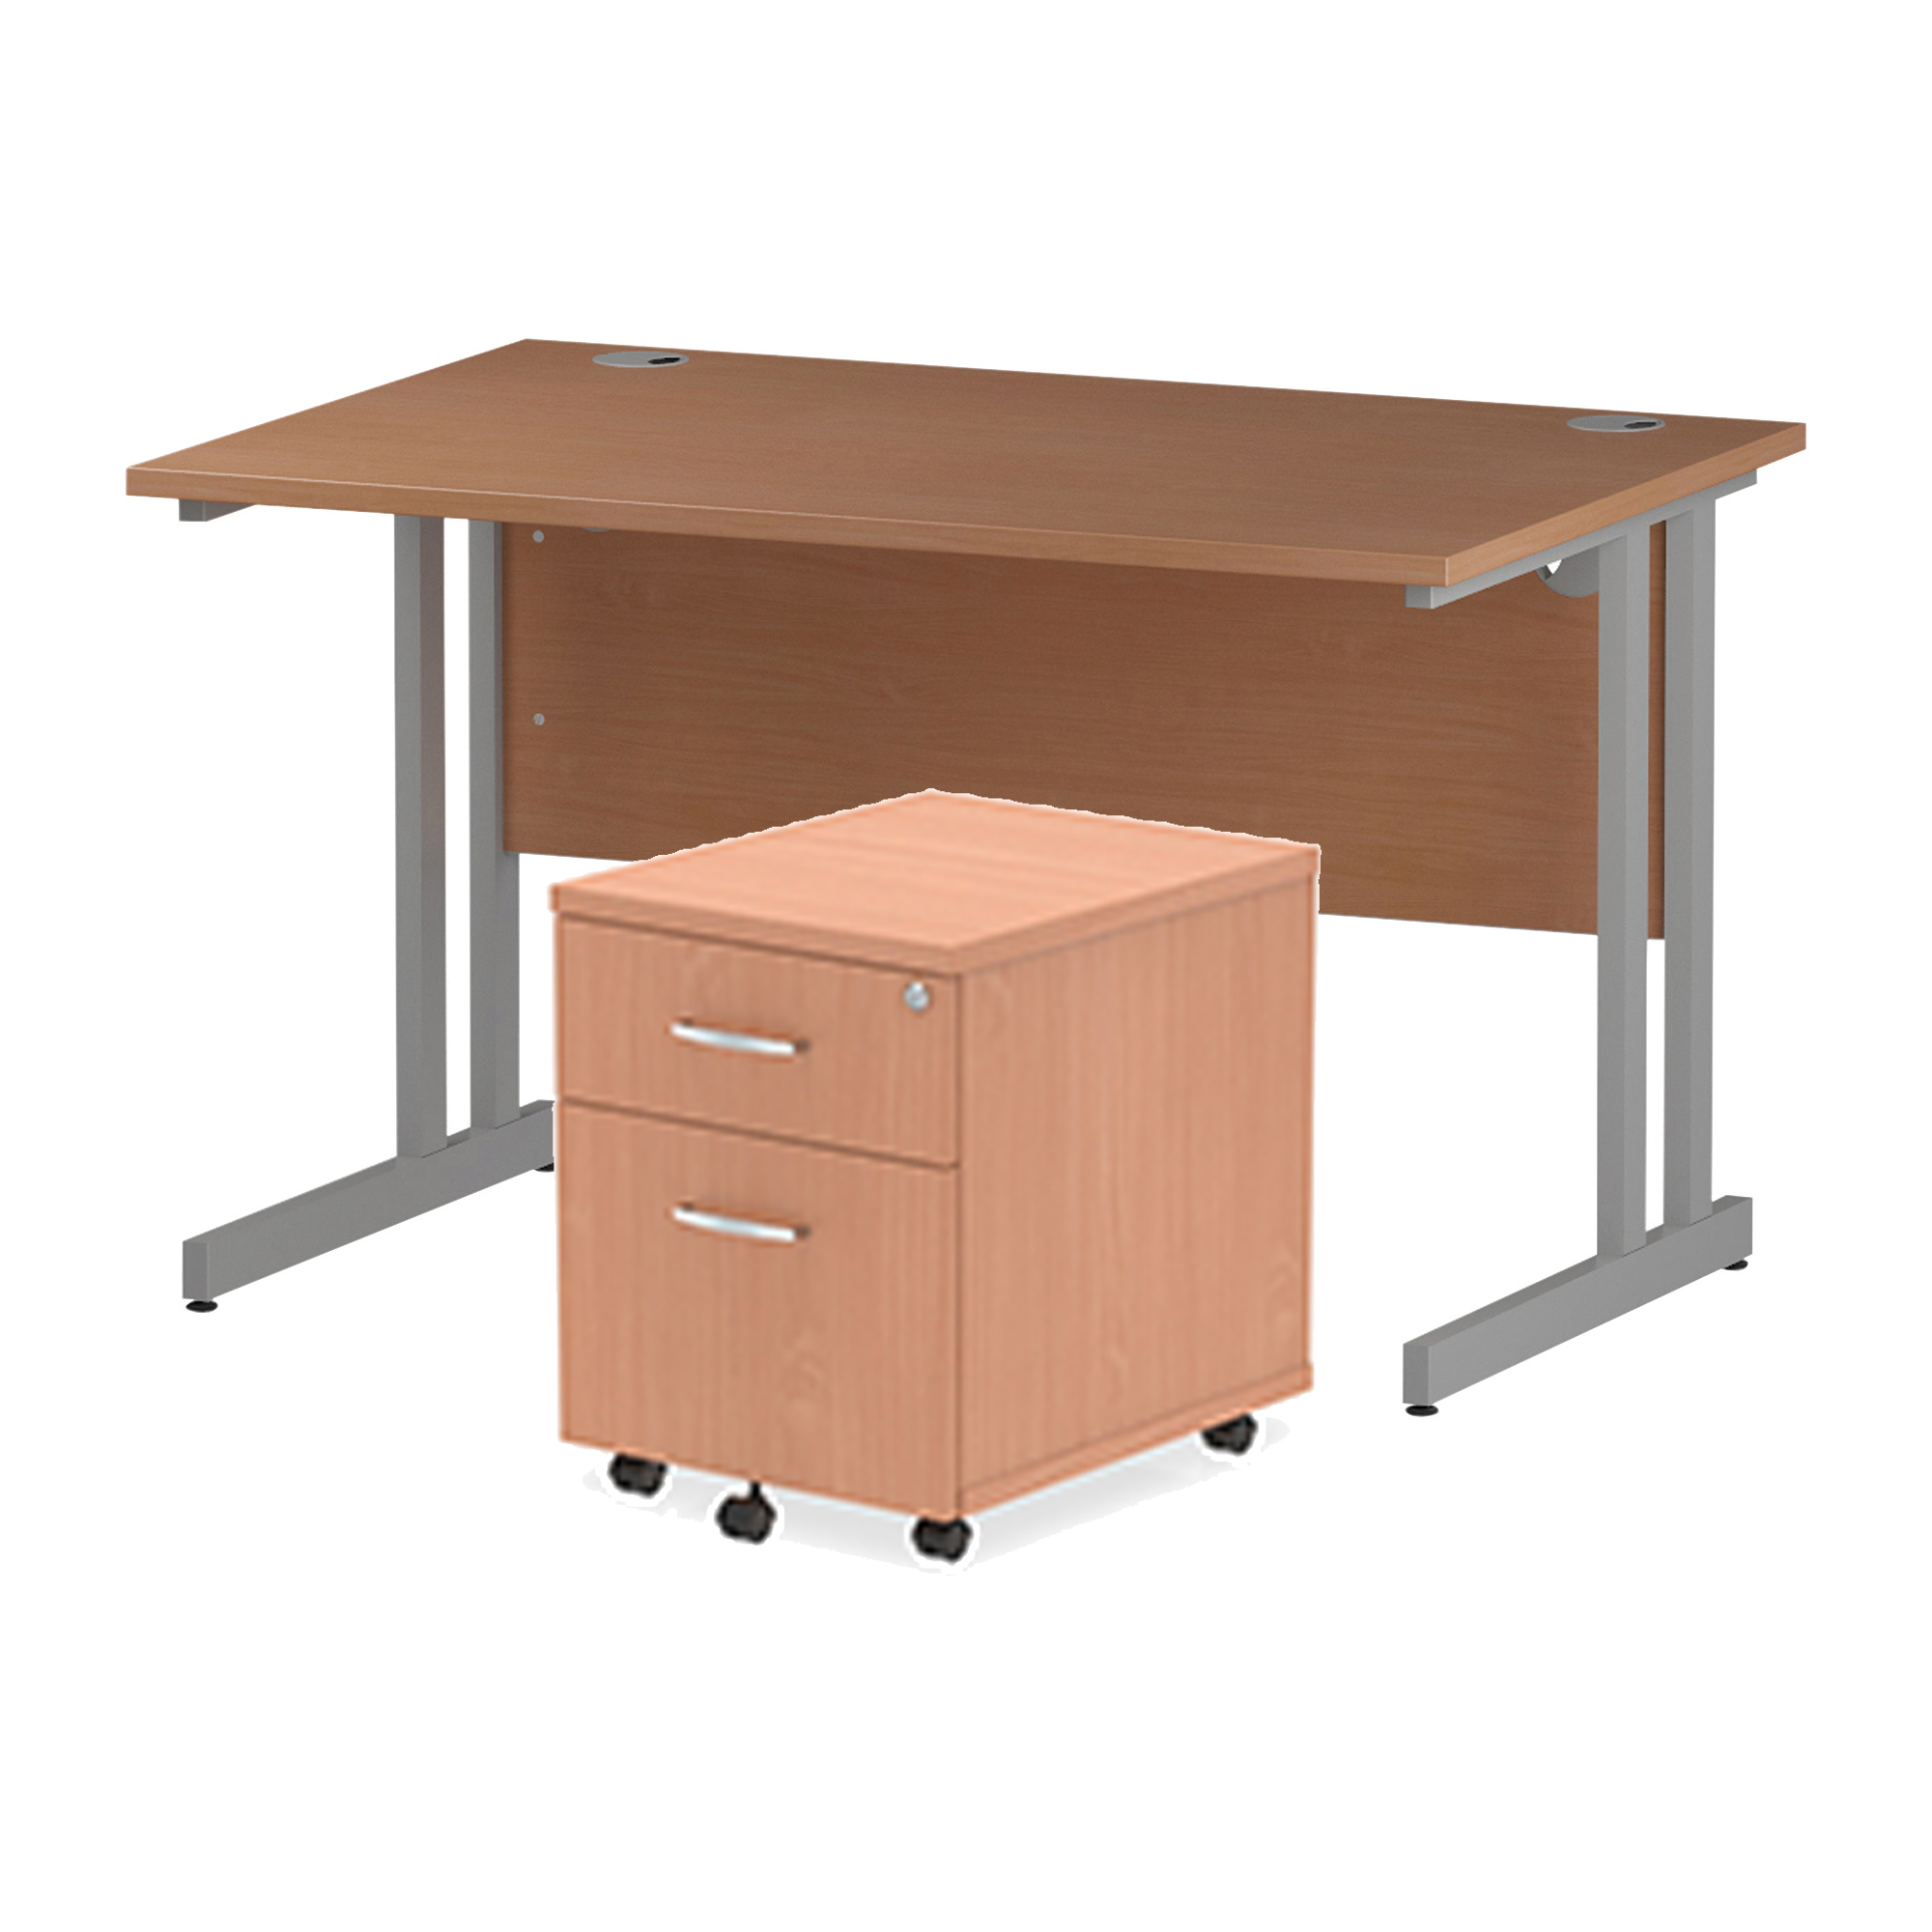 Desks Trexus Cantilever Desk 1200x800 & 2 Drawer Pedestal Beech Bundle Offer Feb-Apr 2020